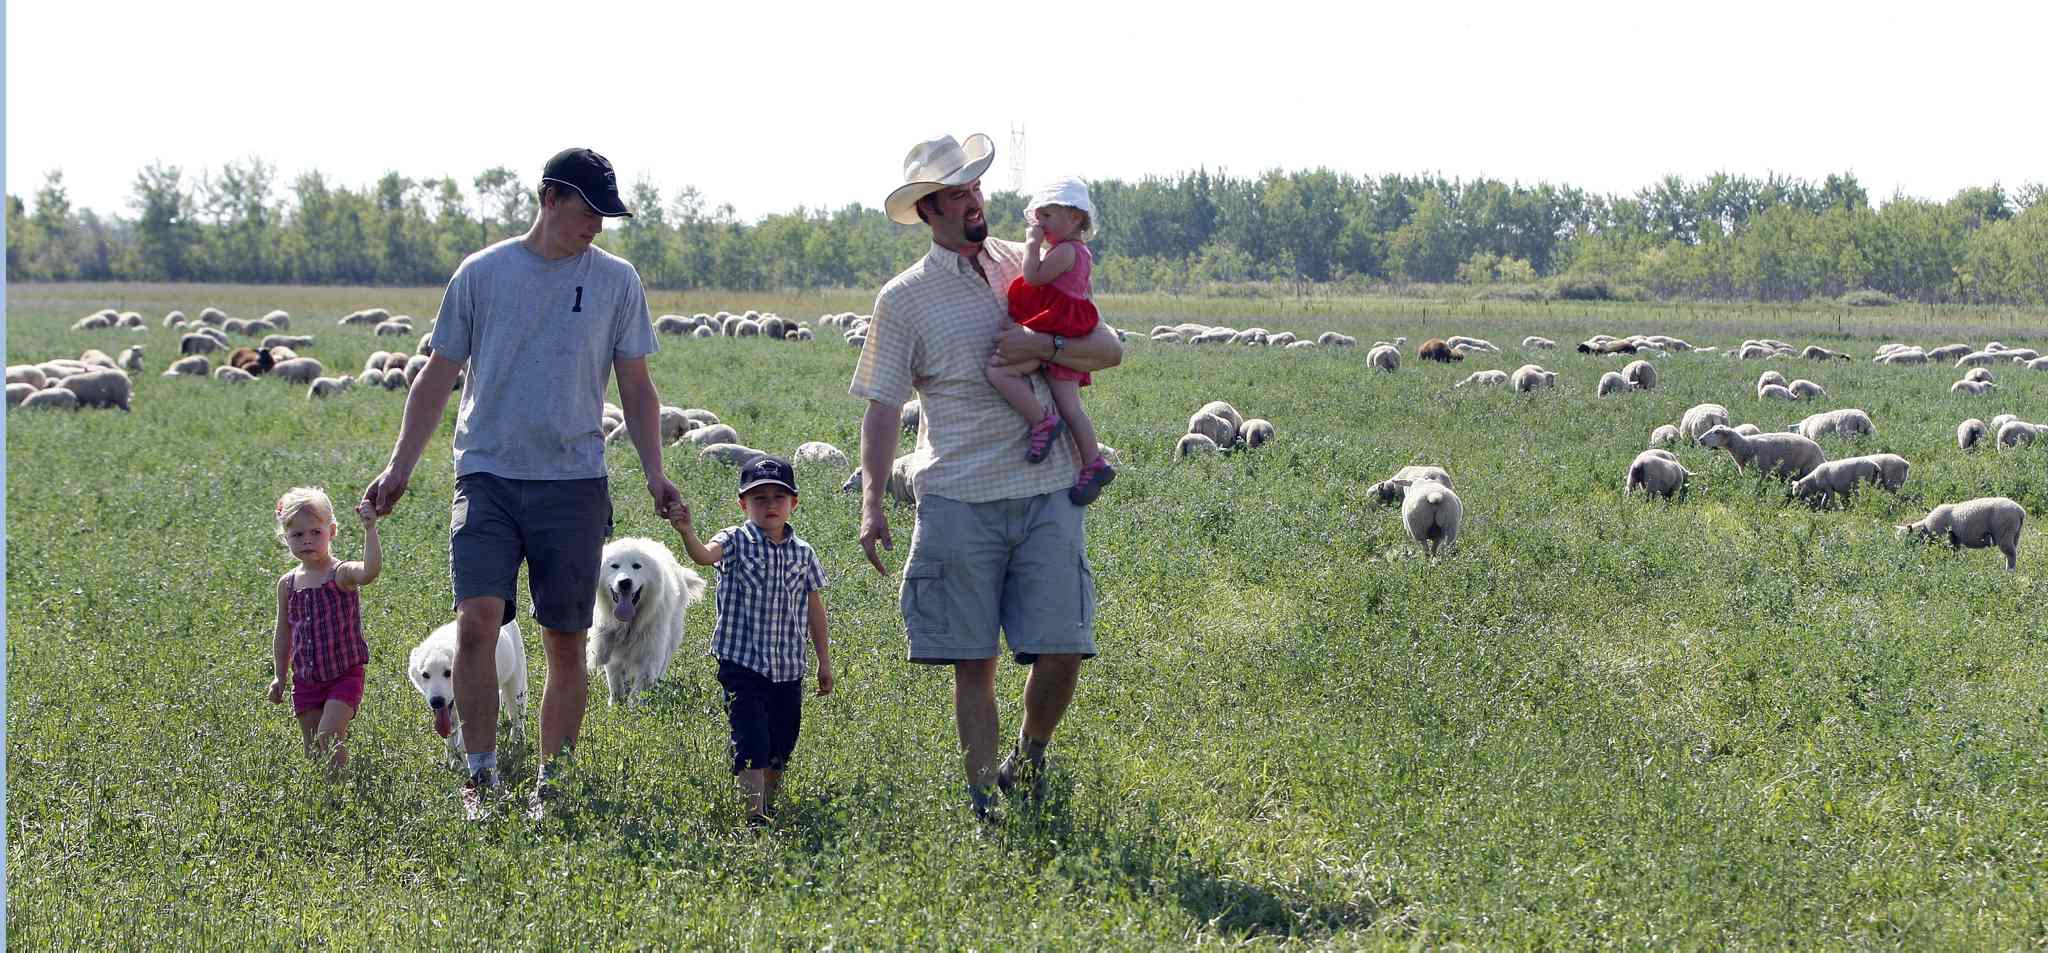 Stefan Bouw (left) with Mikaya, 2, and Jaxon, 4, and Jonathan Bouw with Lucille, 19 months, inspect pasture where they also raise grass-fed sheep.